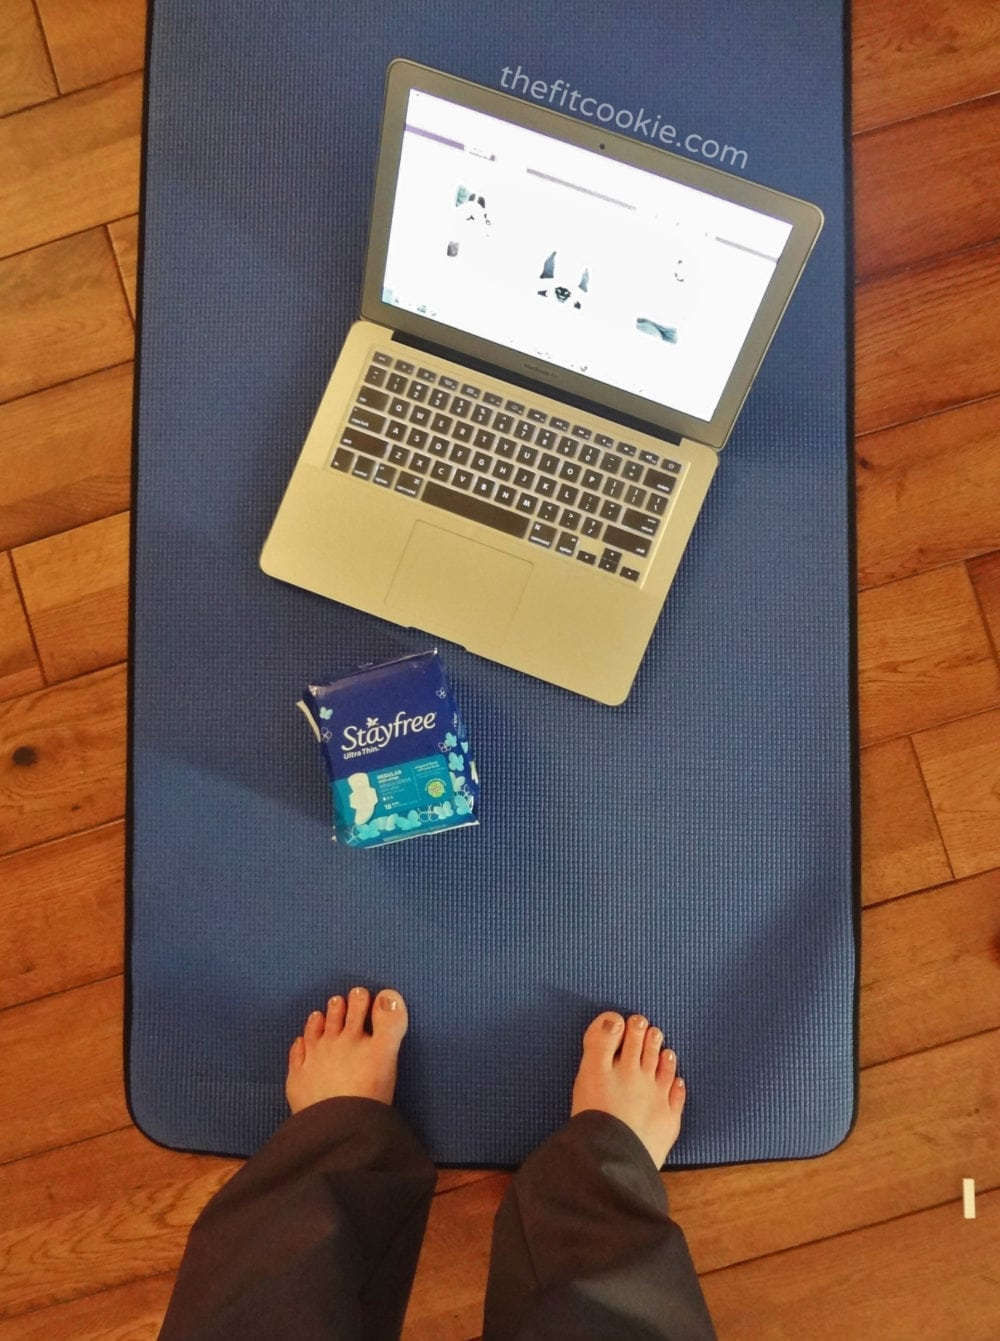 PMS Relief for Active Women - @TheFitCookie #pms #health #sponsored #stayfree